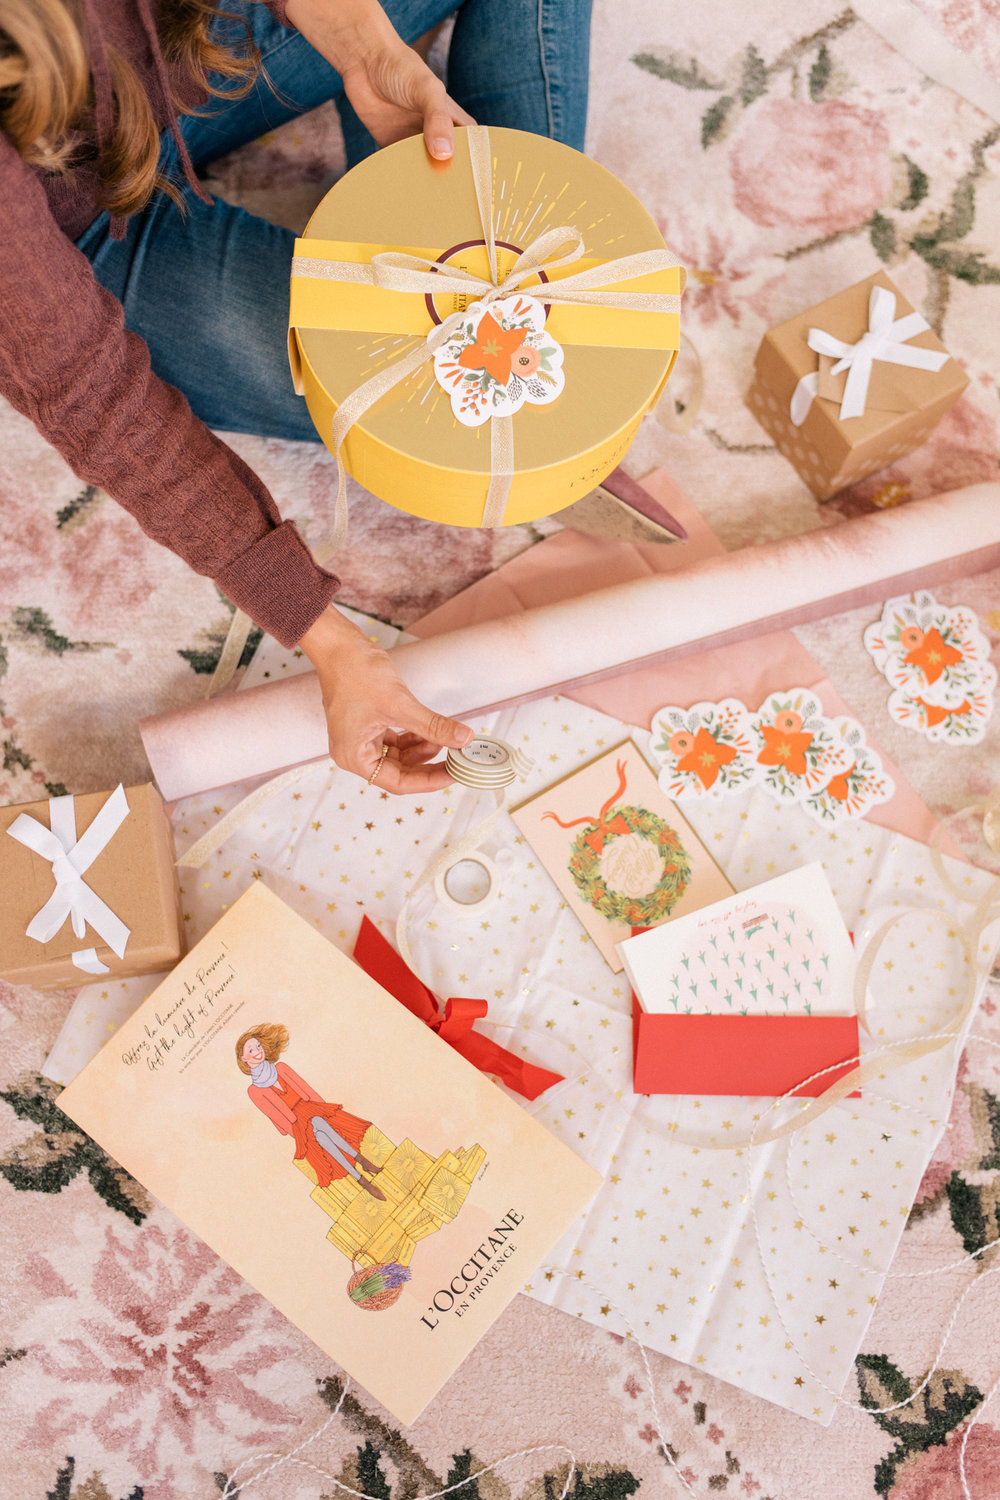 In partnership with L'Occitane.  Responsibilities: Creative concepting, prop sourcing and styling, digital design and animation.  Holiday Beauty Gift Boxes